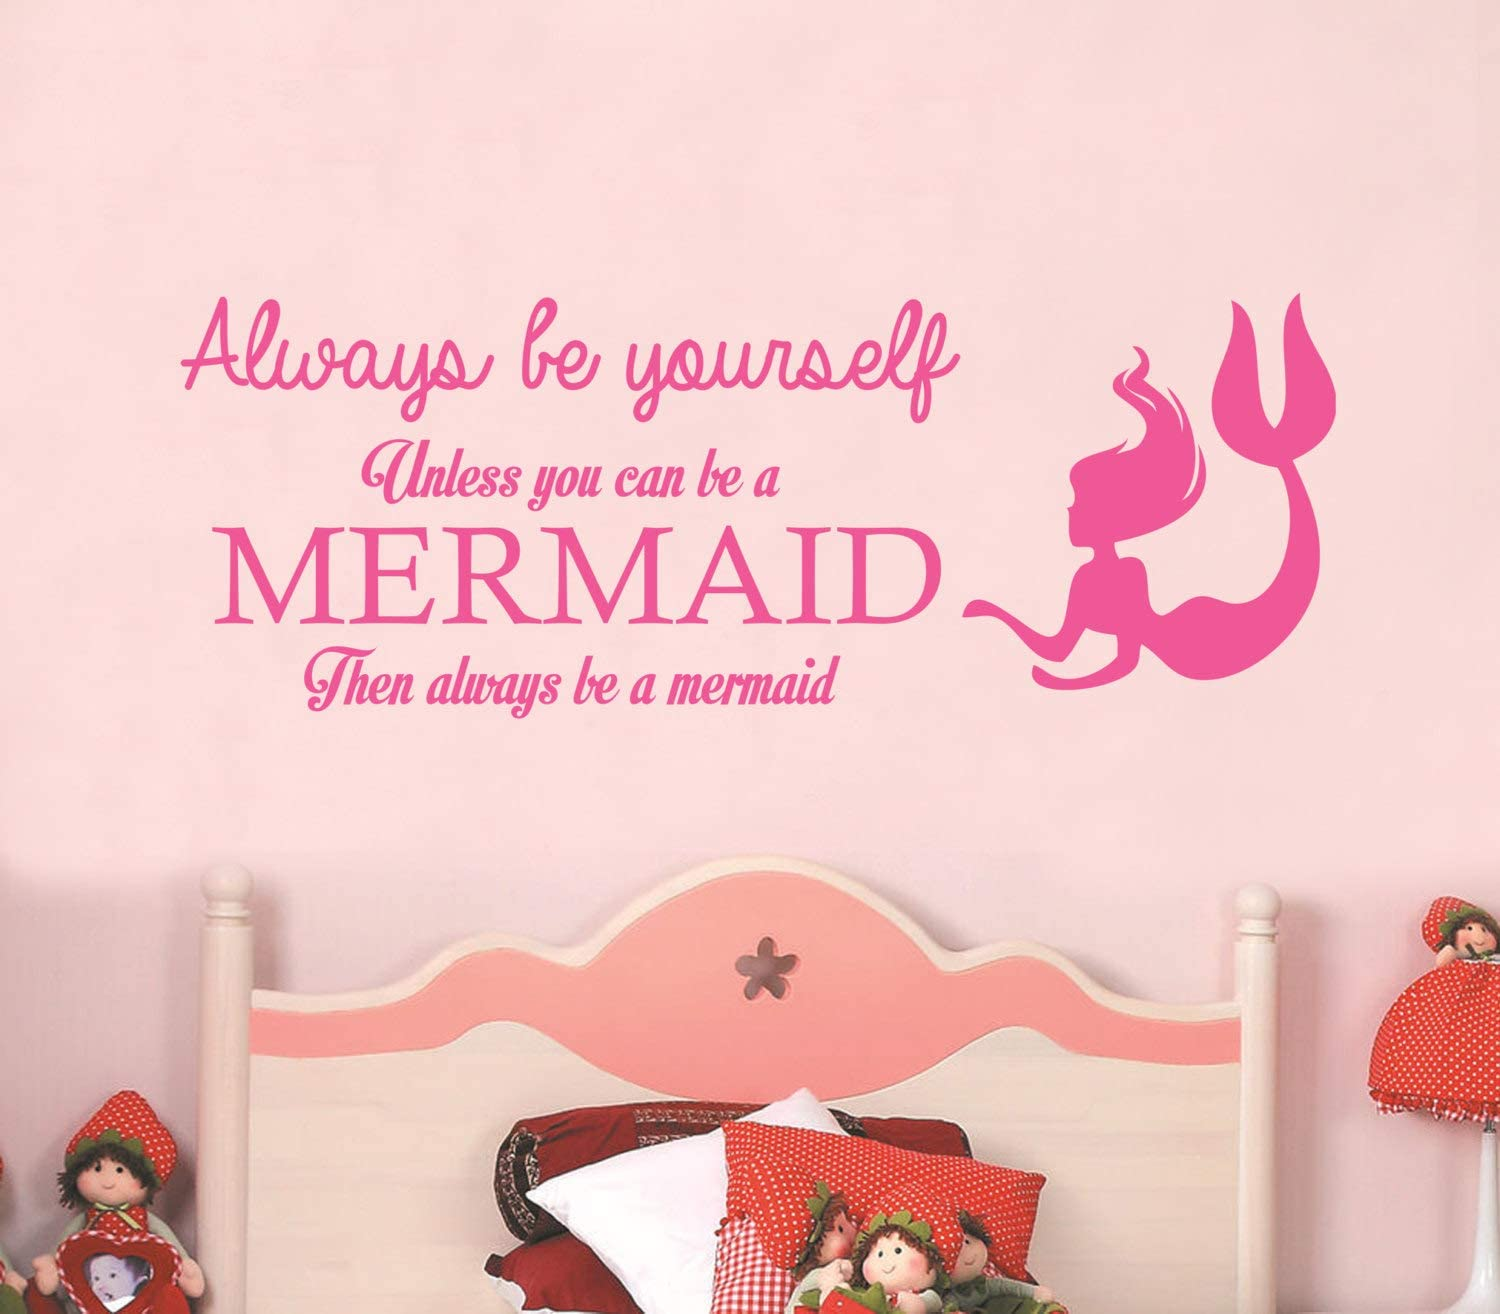 Always Be Yourself Unless You Can Be a Mermaid - Wall Stickers Art Decor Decal Vinyl Plaster Paper House Living Bedroom Room Simple Custom Decoration Tasteless Removable Self Customized 42